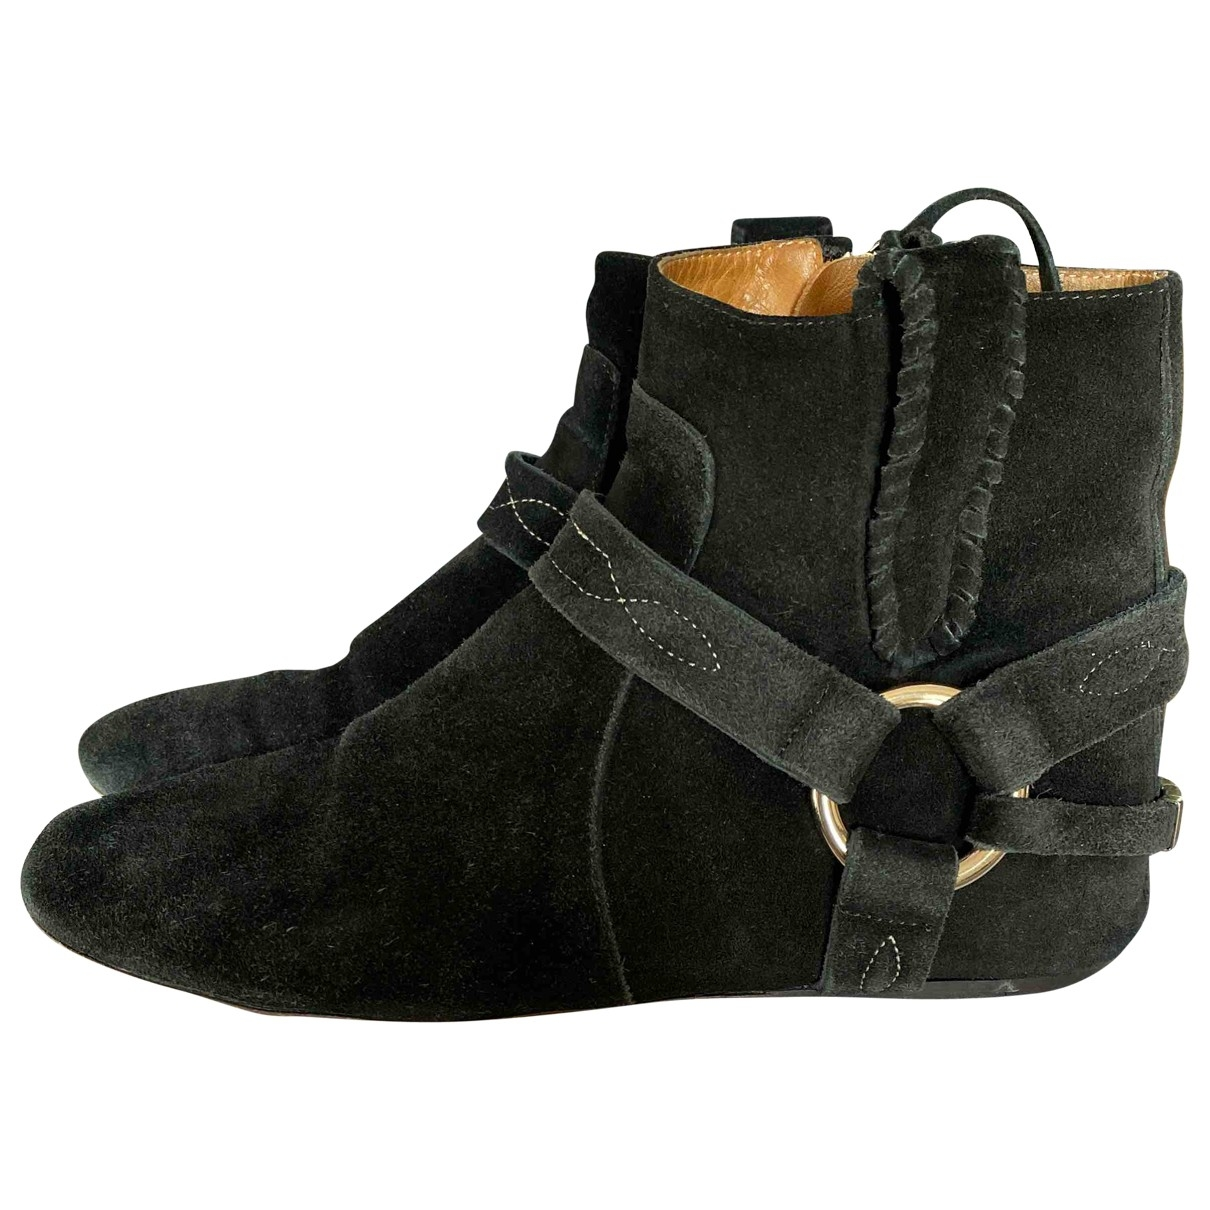 Isabel Marant \N Black Suede Ankle boots for Women 37 EU